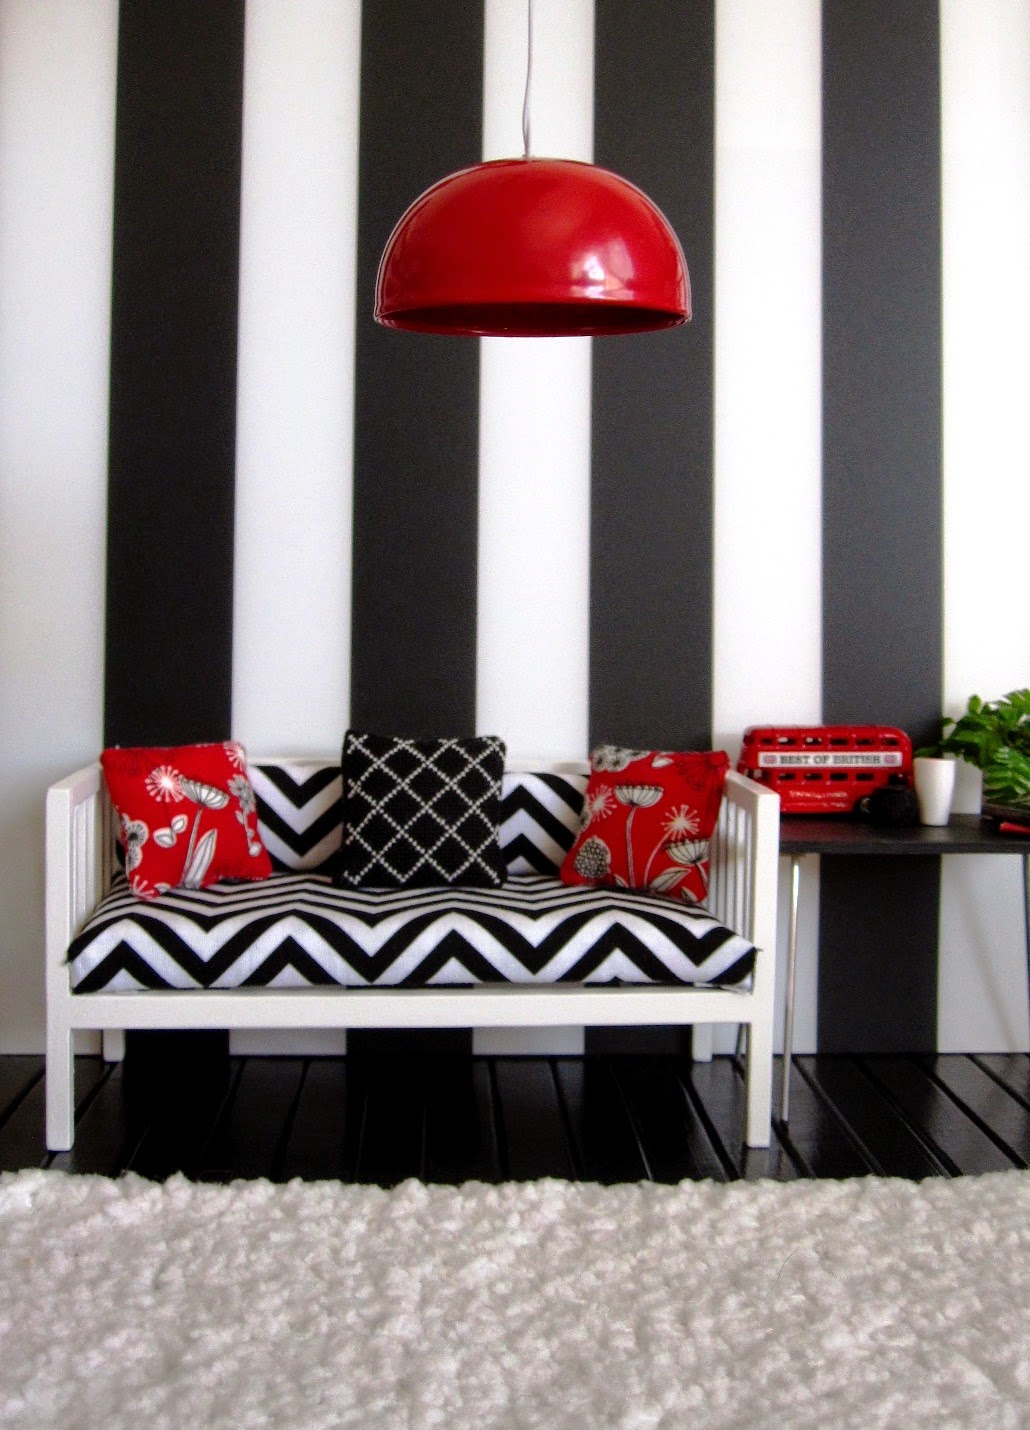 Modern miniature black white and red scene of a day bed with cushions next to a table displaying a model London bus, vases, books and a plant. A large red lightshade hangs from above and a white flokati rug is on the floor.